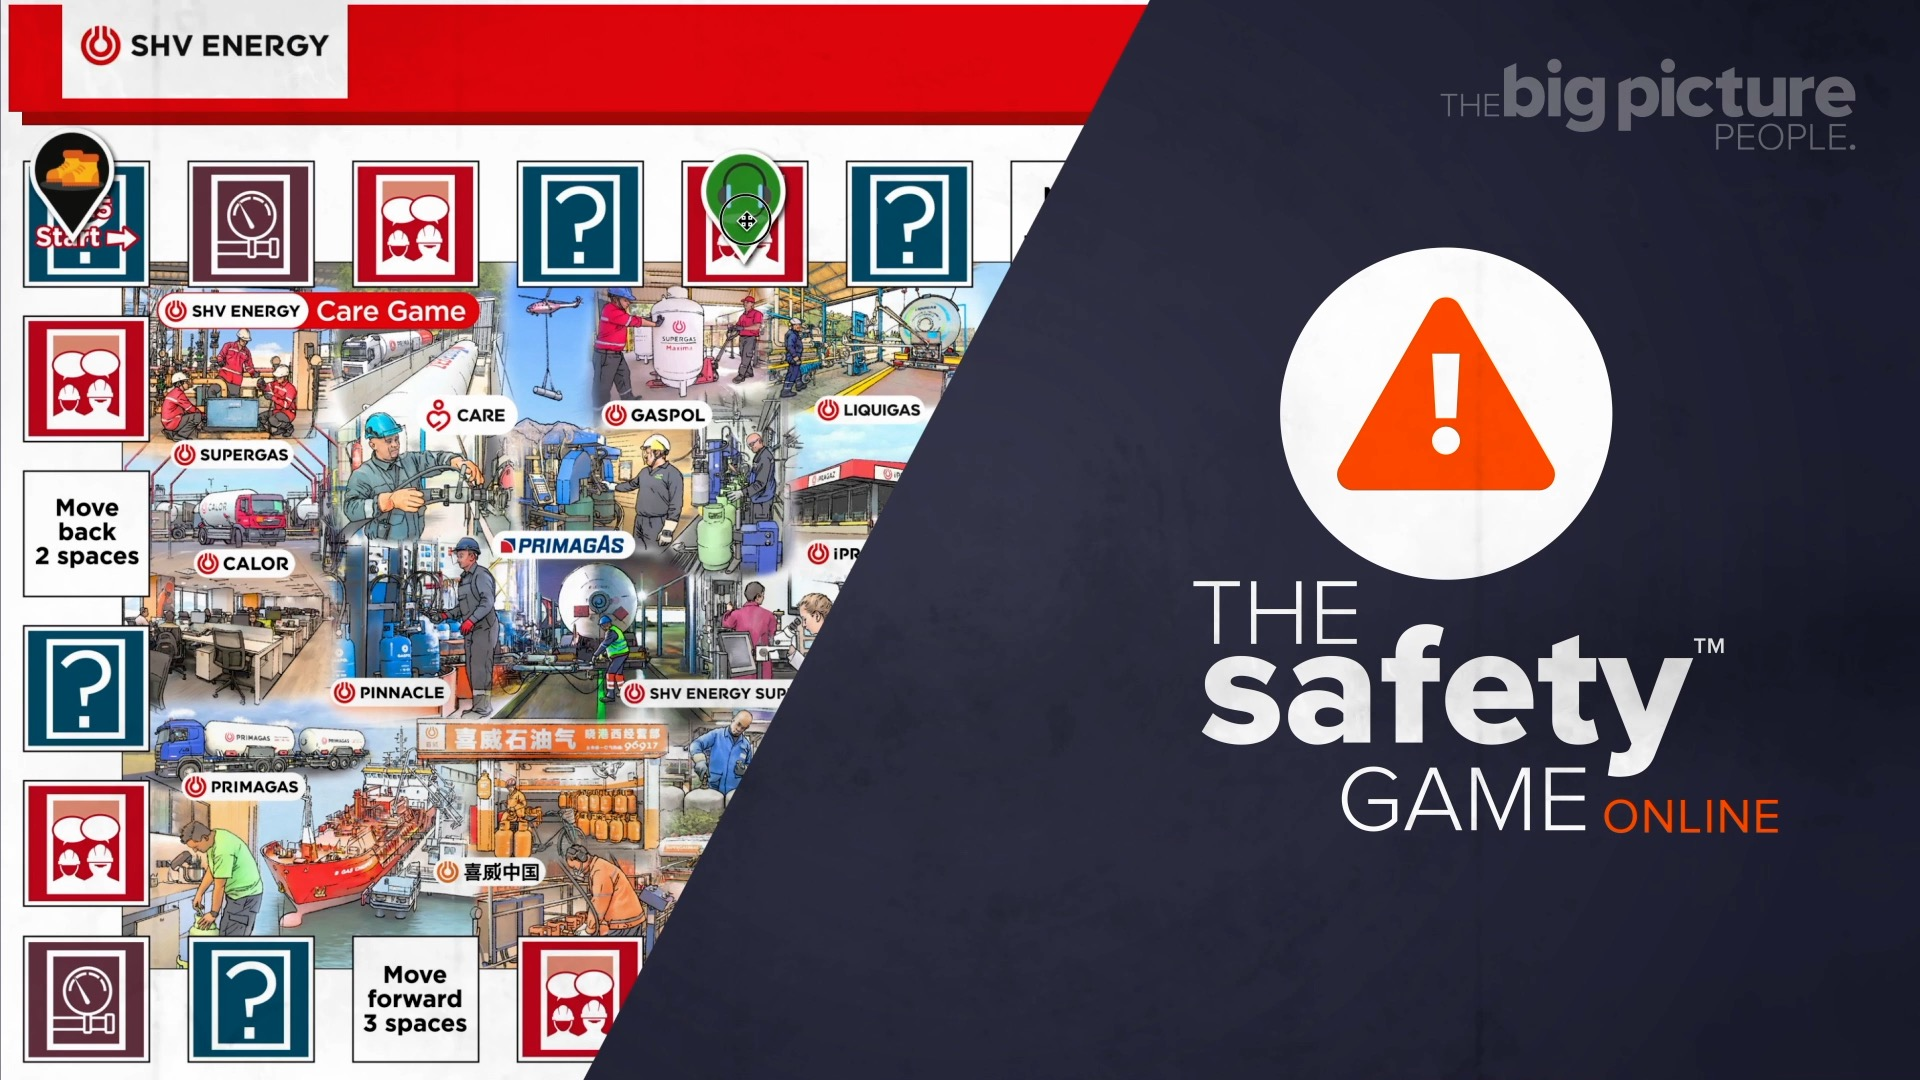 Gamification of health and seafety - the safety game online board game like monopoly but for safety